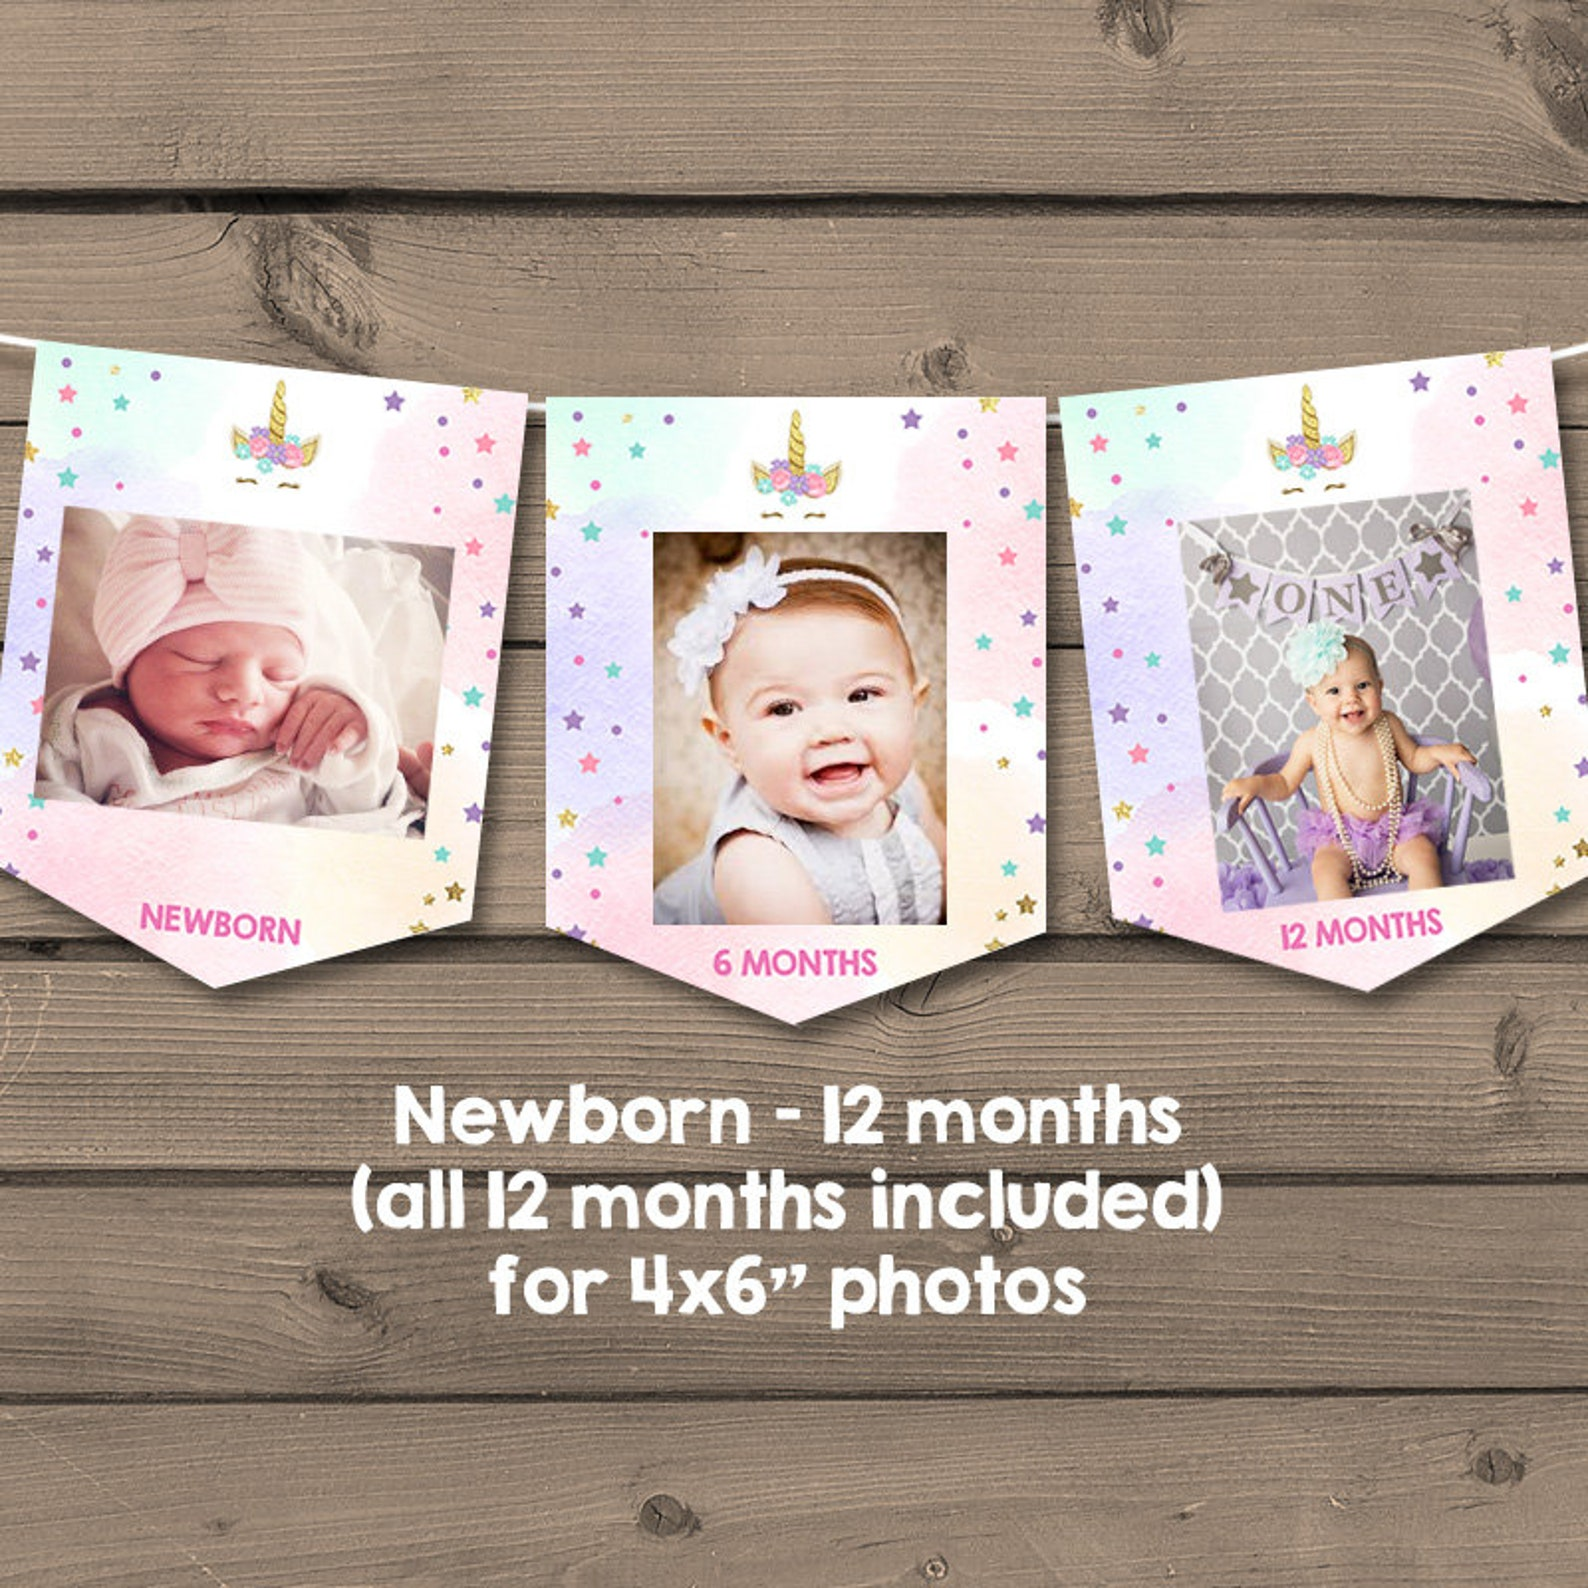 Printable Unicorn Photo Banners